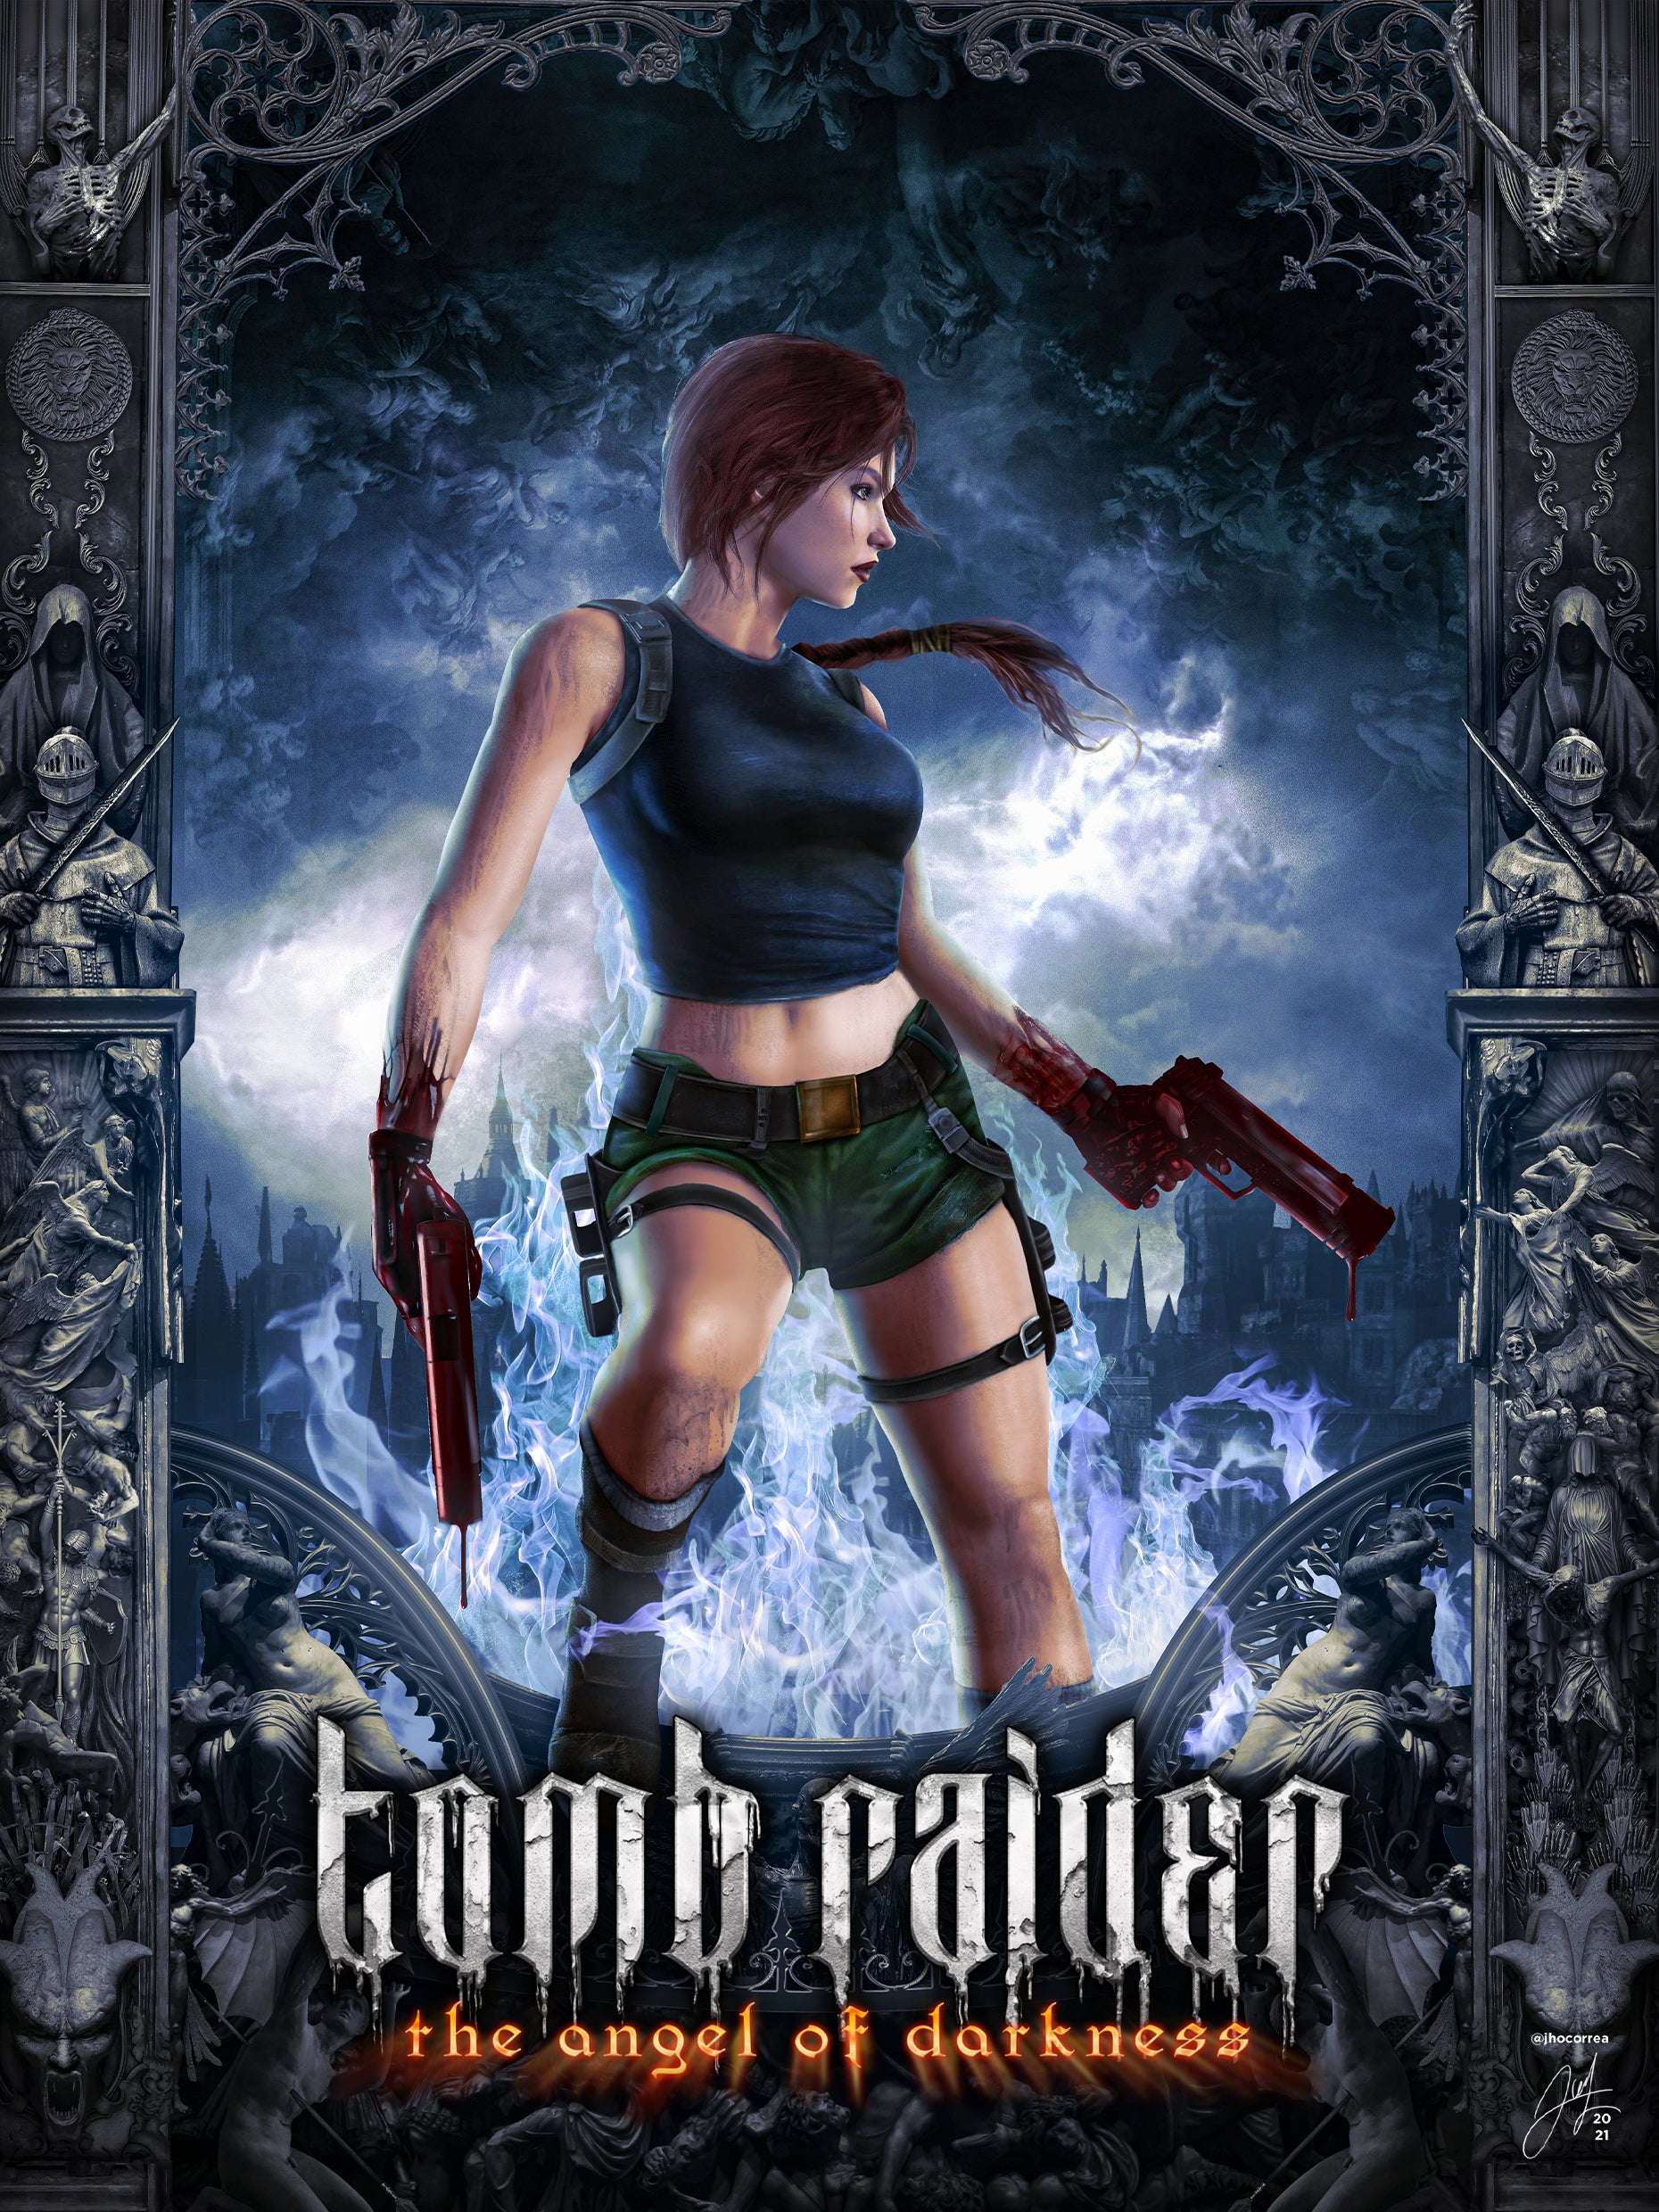 The full version of Tomb Raider fan and community member João's reimagined take on the Angel of Darkness box art